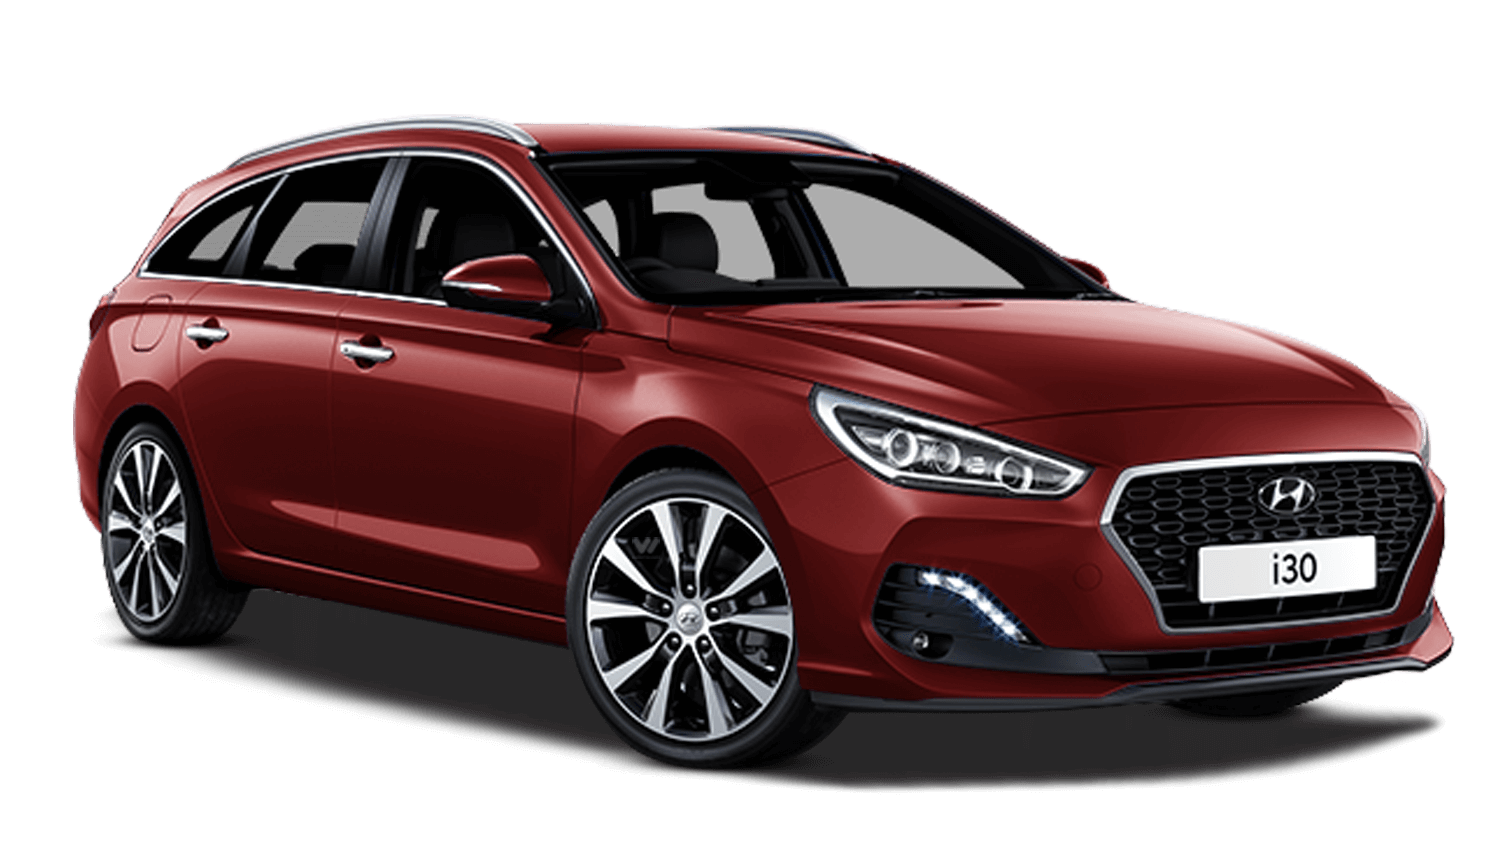 Fiery Red Hyundai I30 Tourer